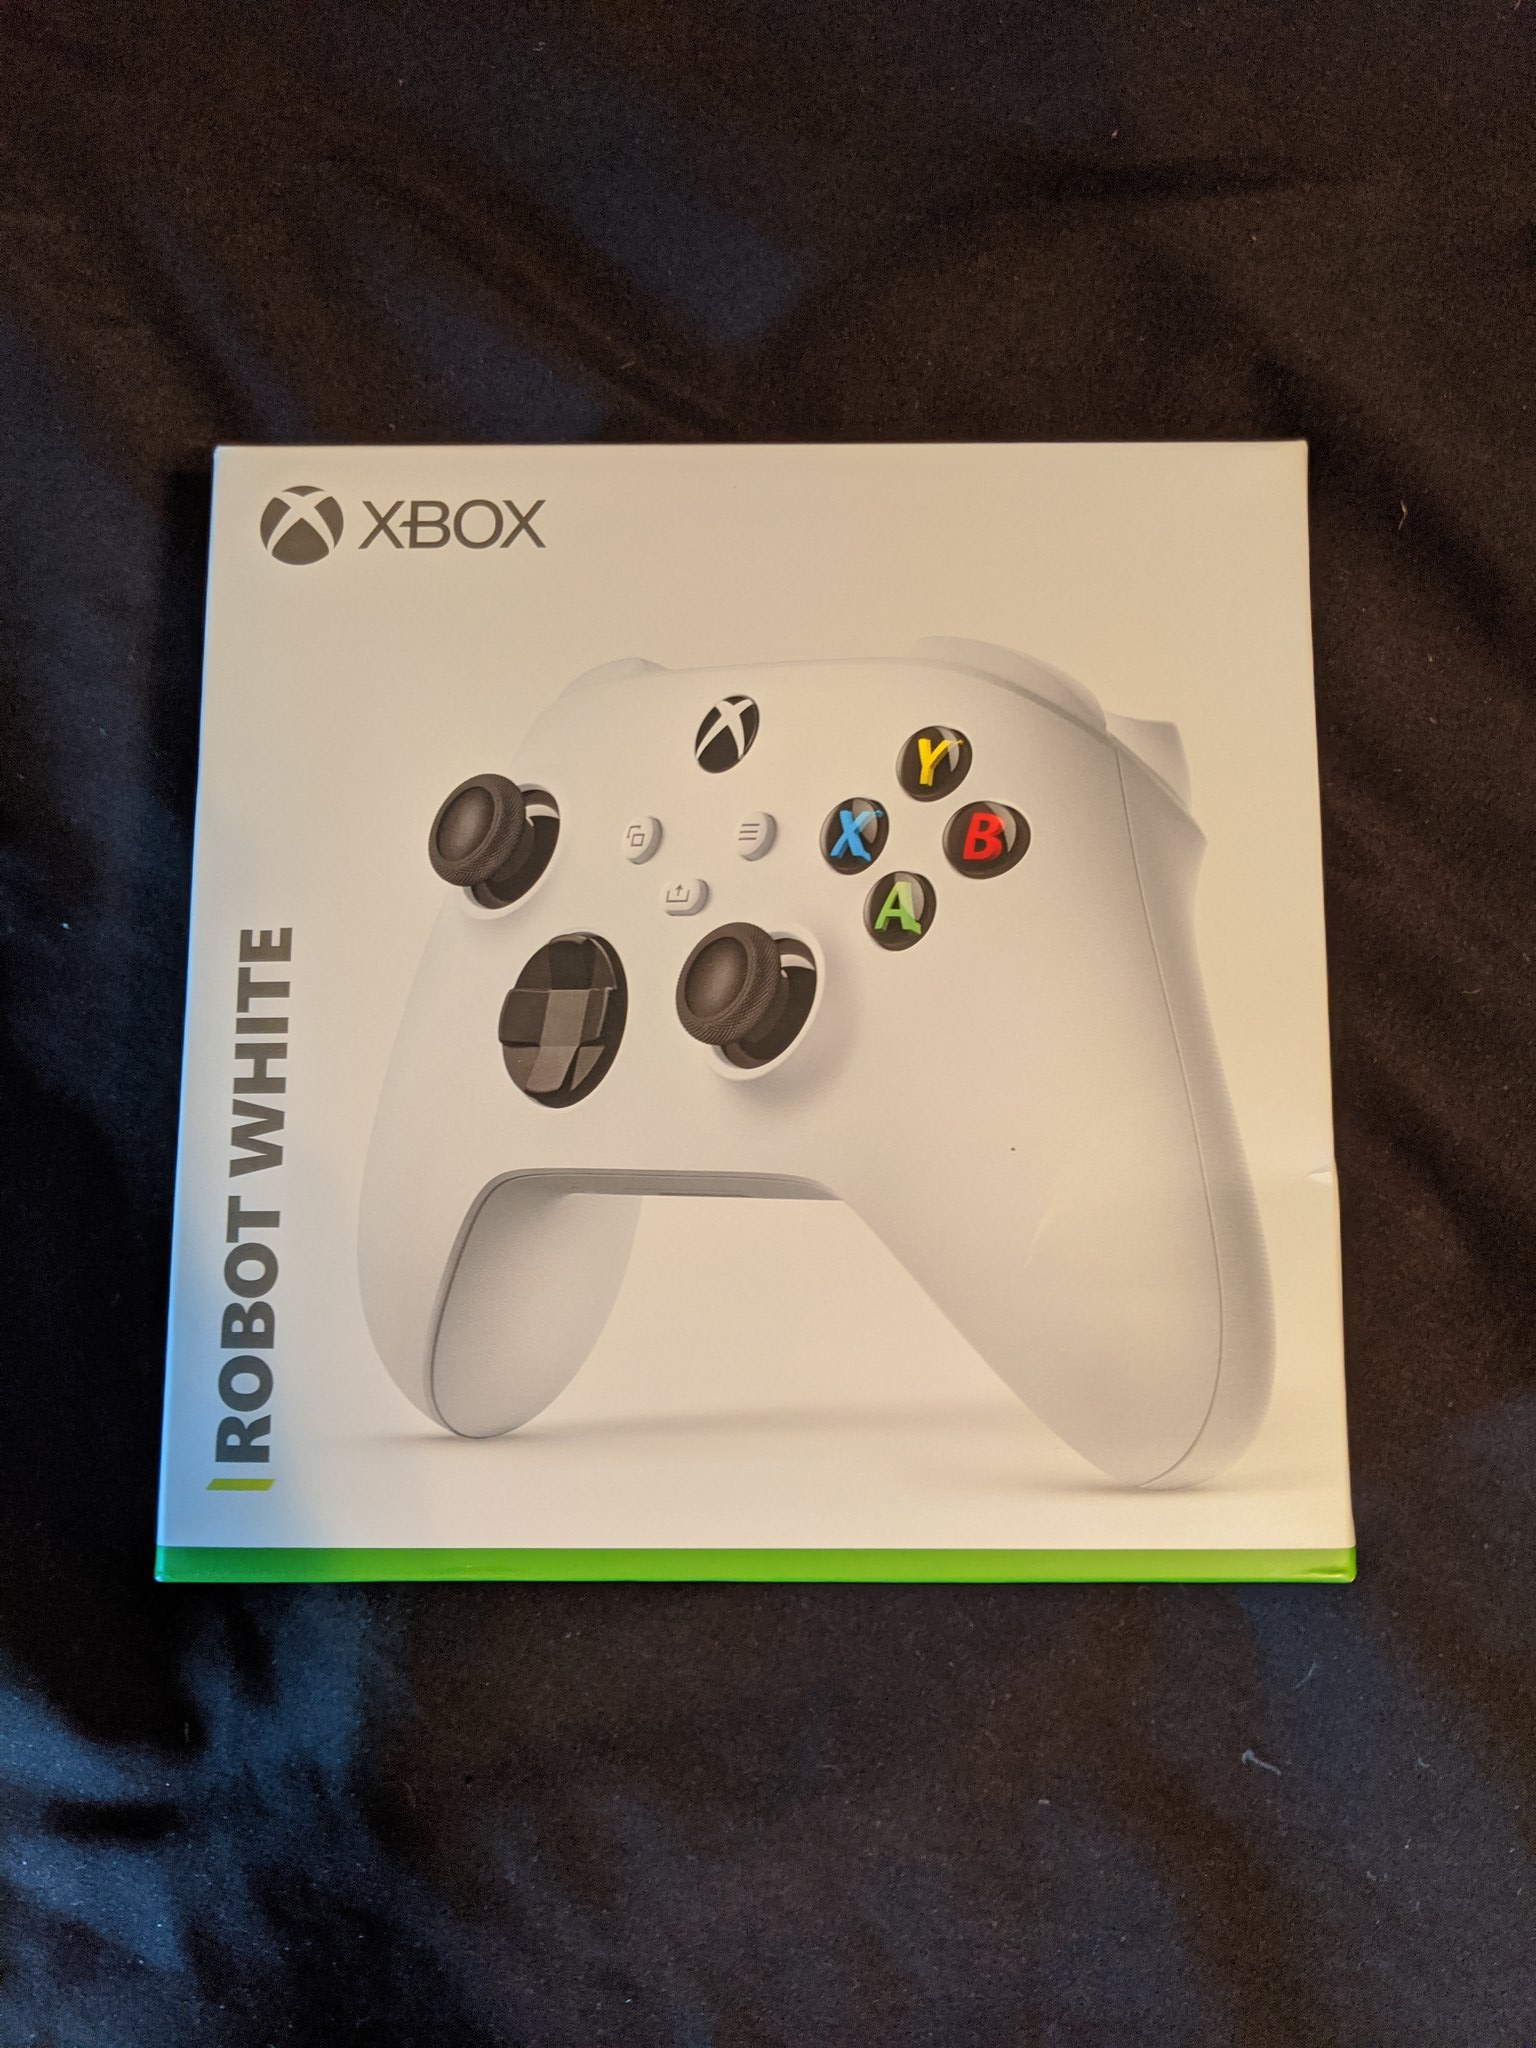 Xbox Series X controller packaging